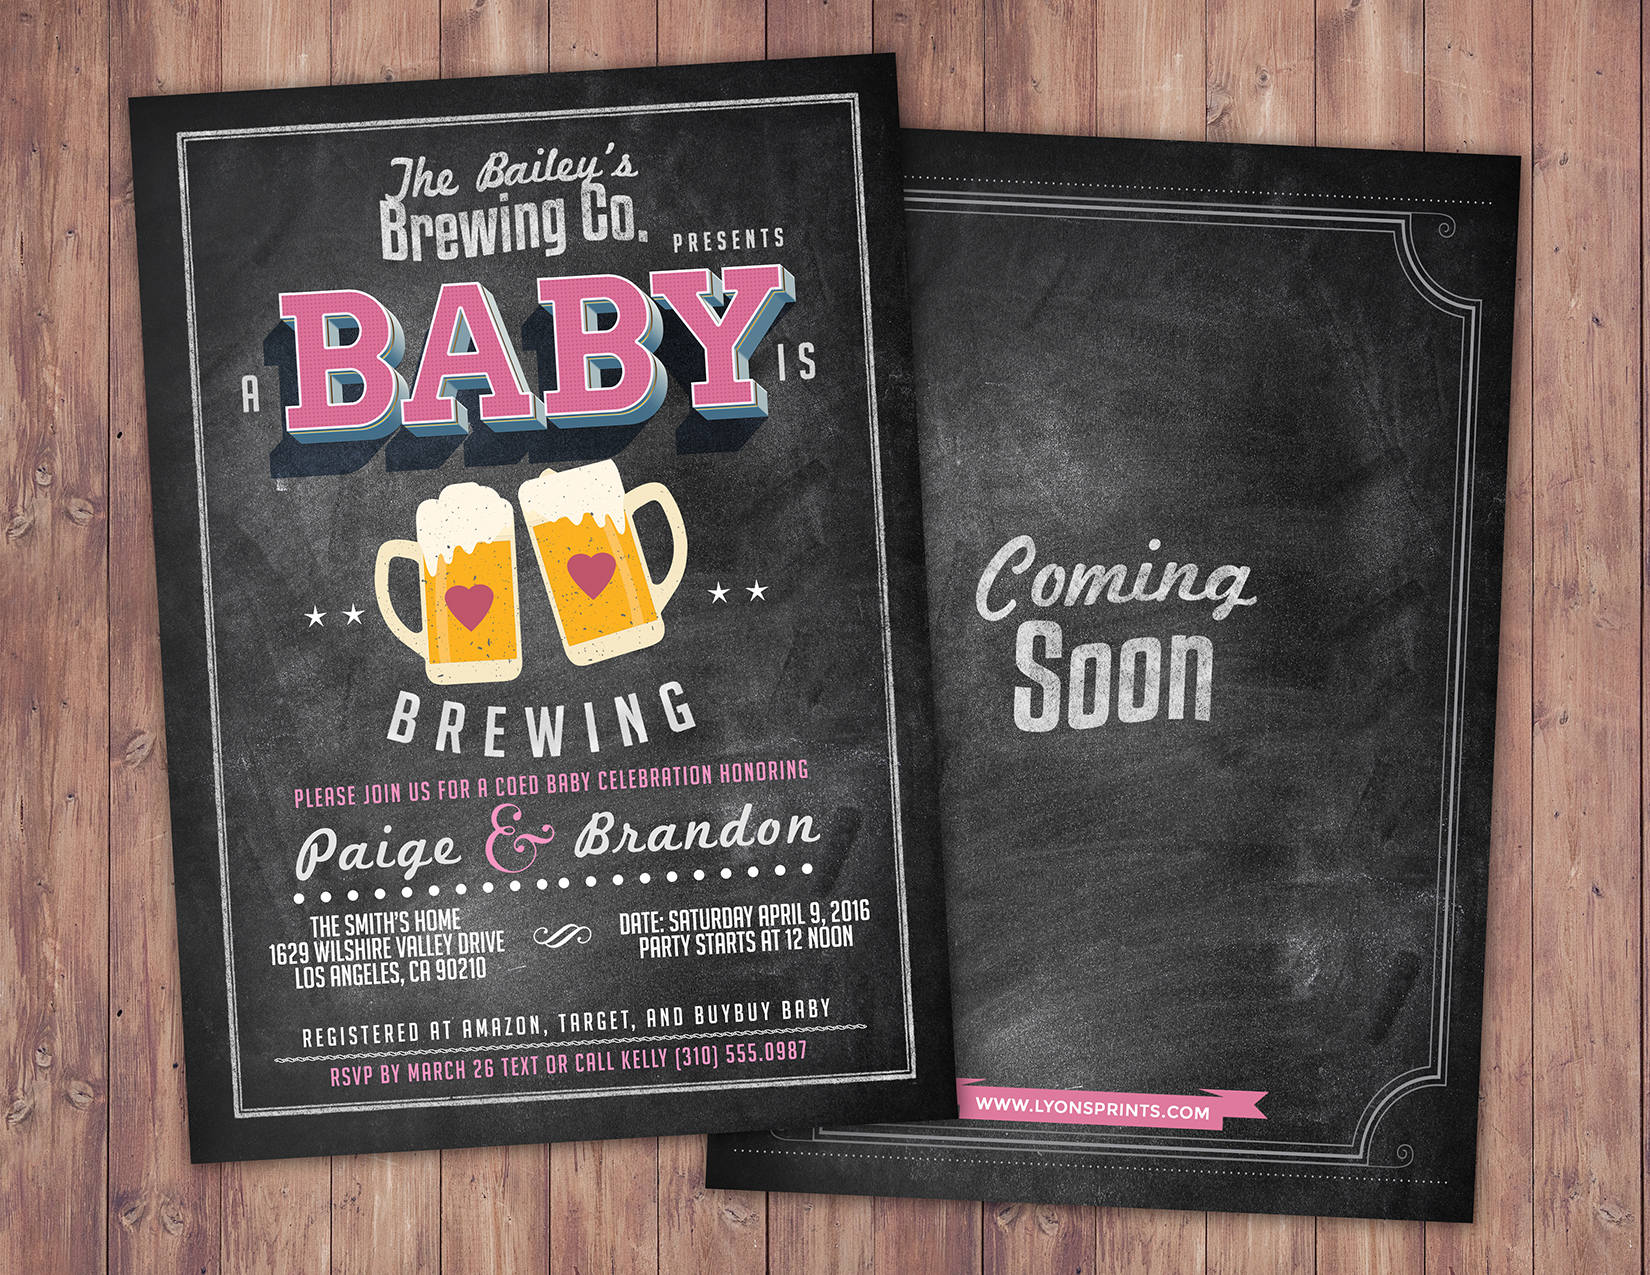 Full Size of Baby Shower:precious Coed Baby Shower Picture Designs Coed Baby Shower Invitation Beer Baby Shower Invitation Couples Coed Baby Shower Invitation Beer Baby Shower Invitation Couples Baby Shower Baby Shower Boy Baby Shower Couples Shower